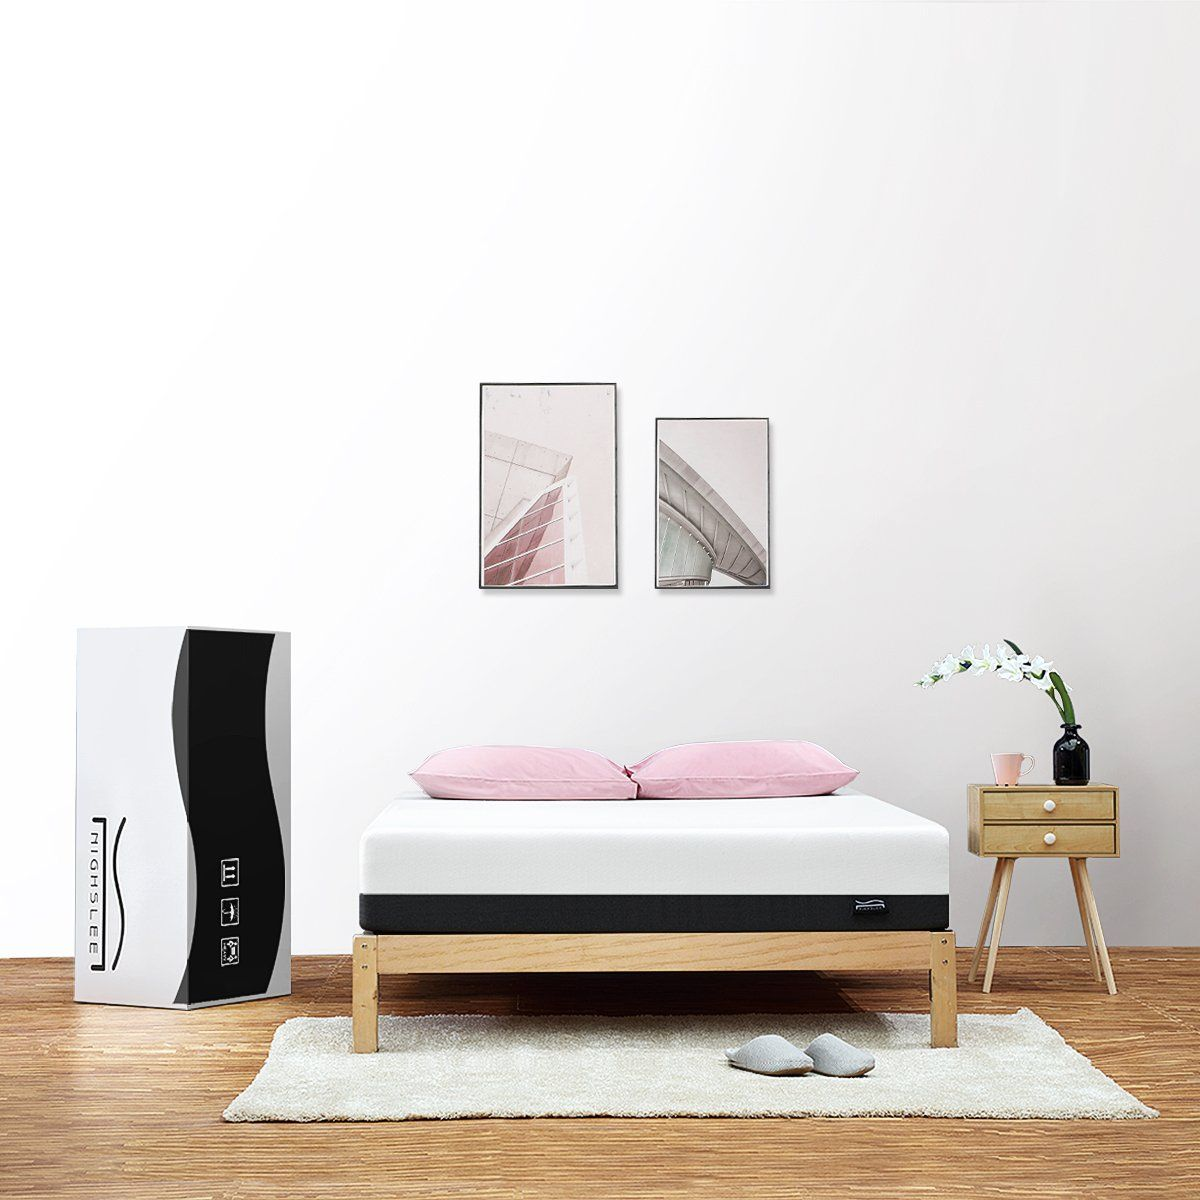 nighslee mattress breathable twin mattress with cooling gel